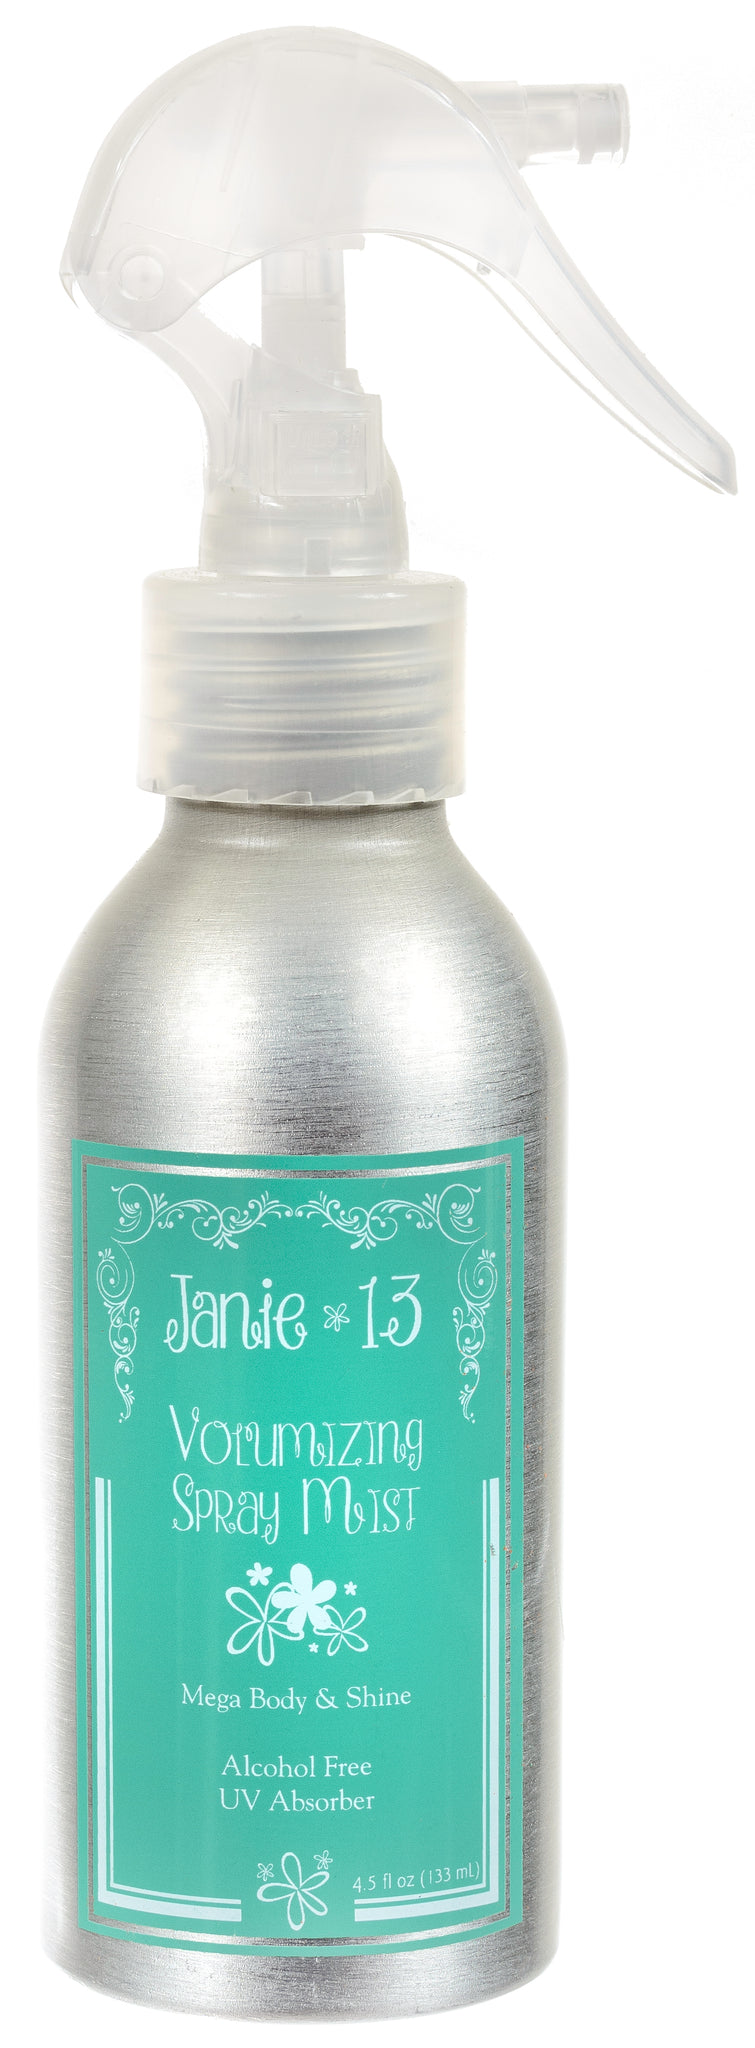 Volumizing Spray Mist  4.5oz - Janie 13 Hair Products best hair products for sulphate free shampoo and gluten free products